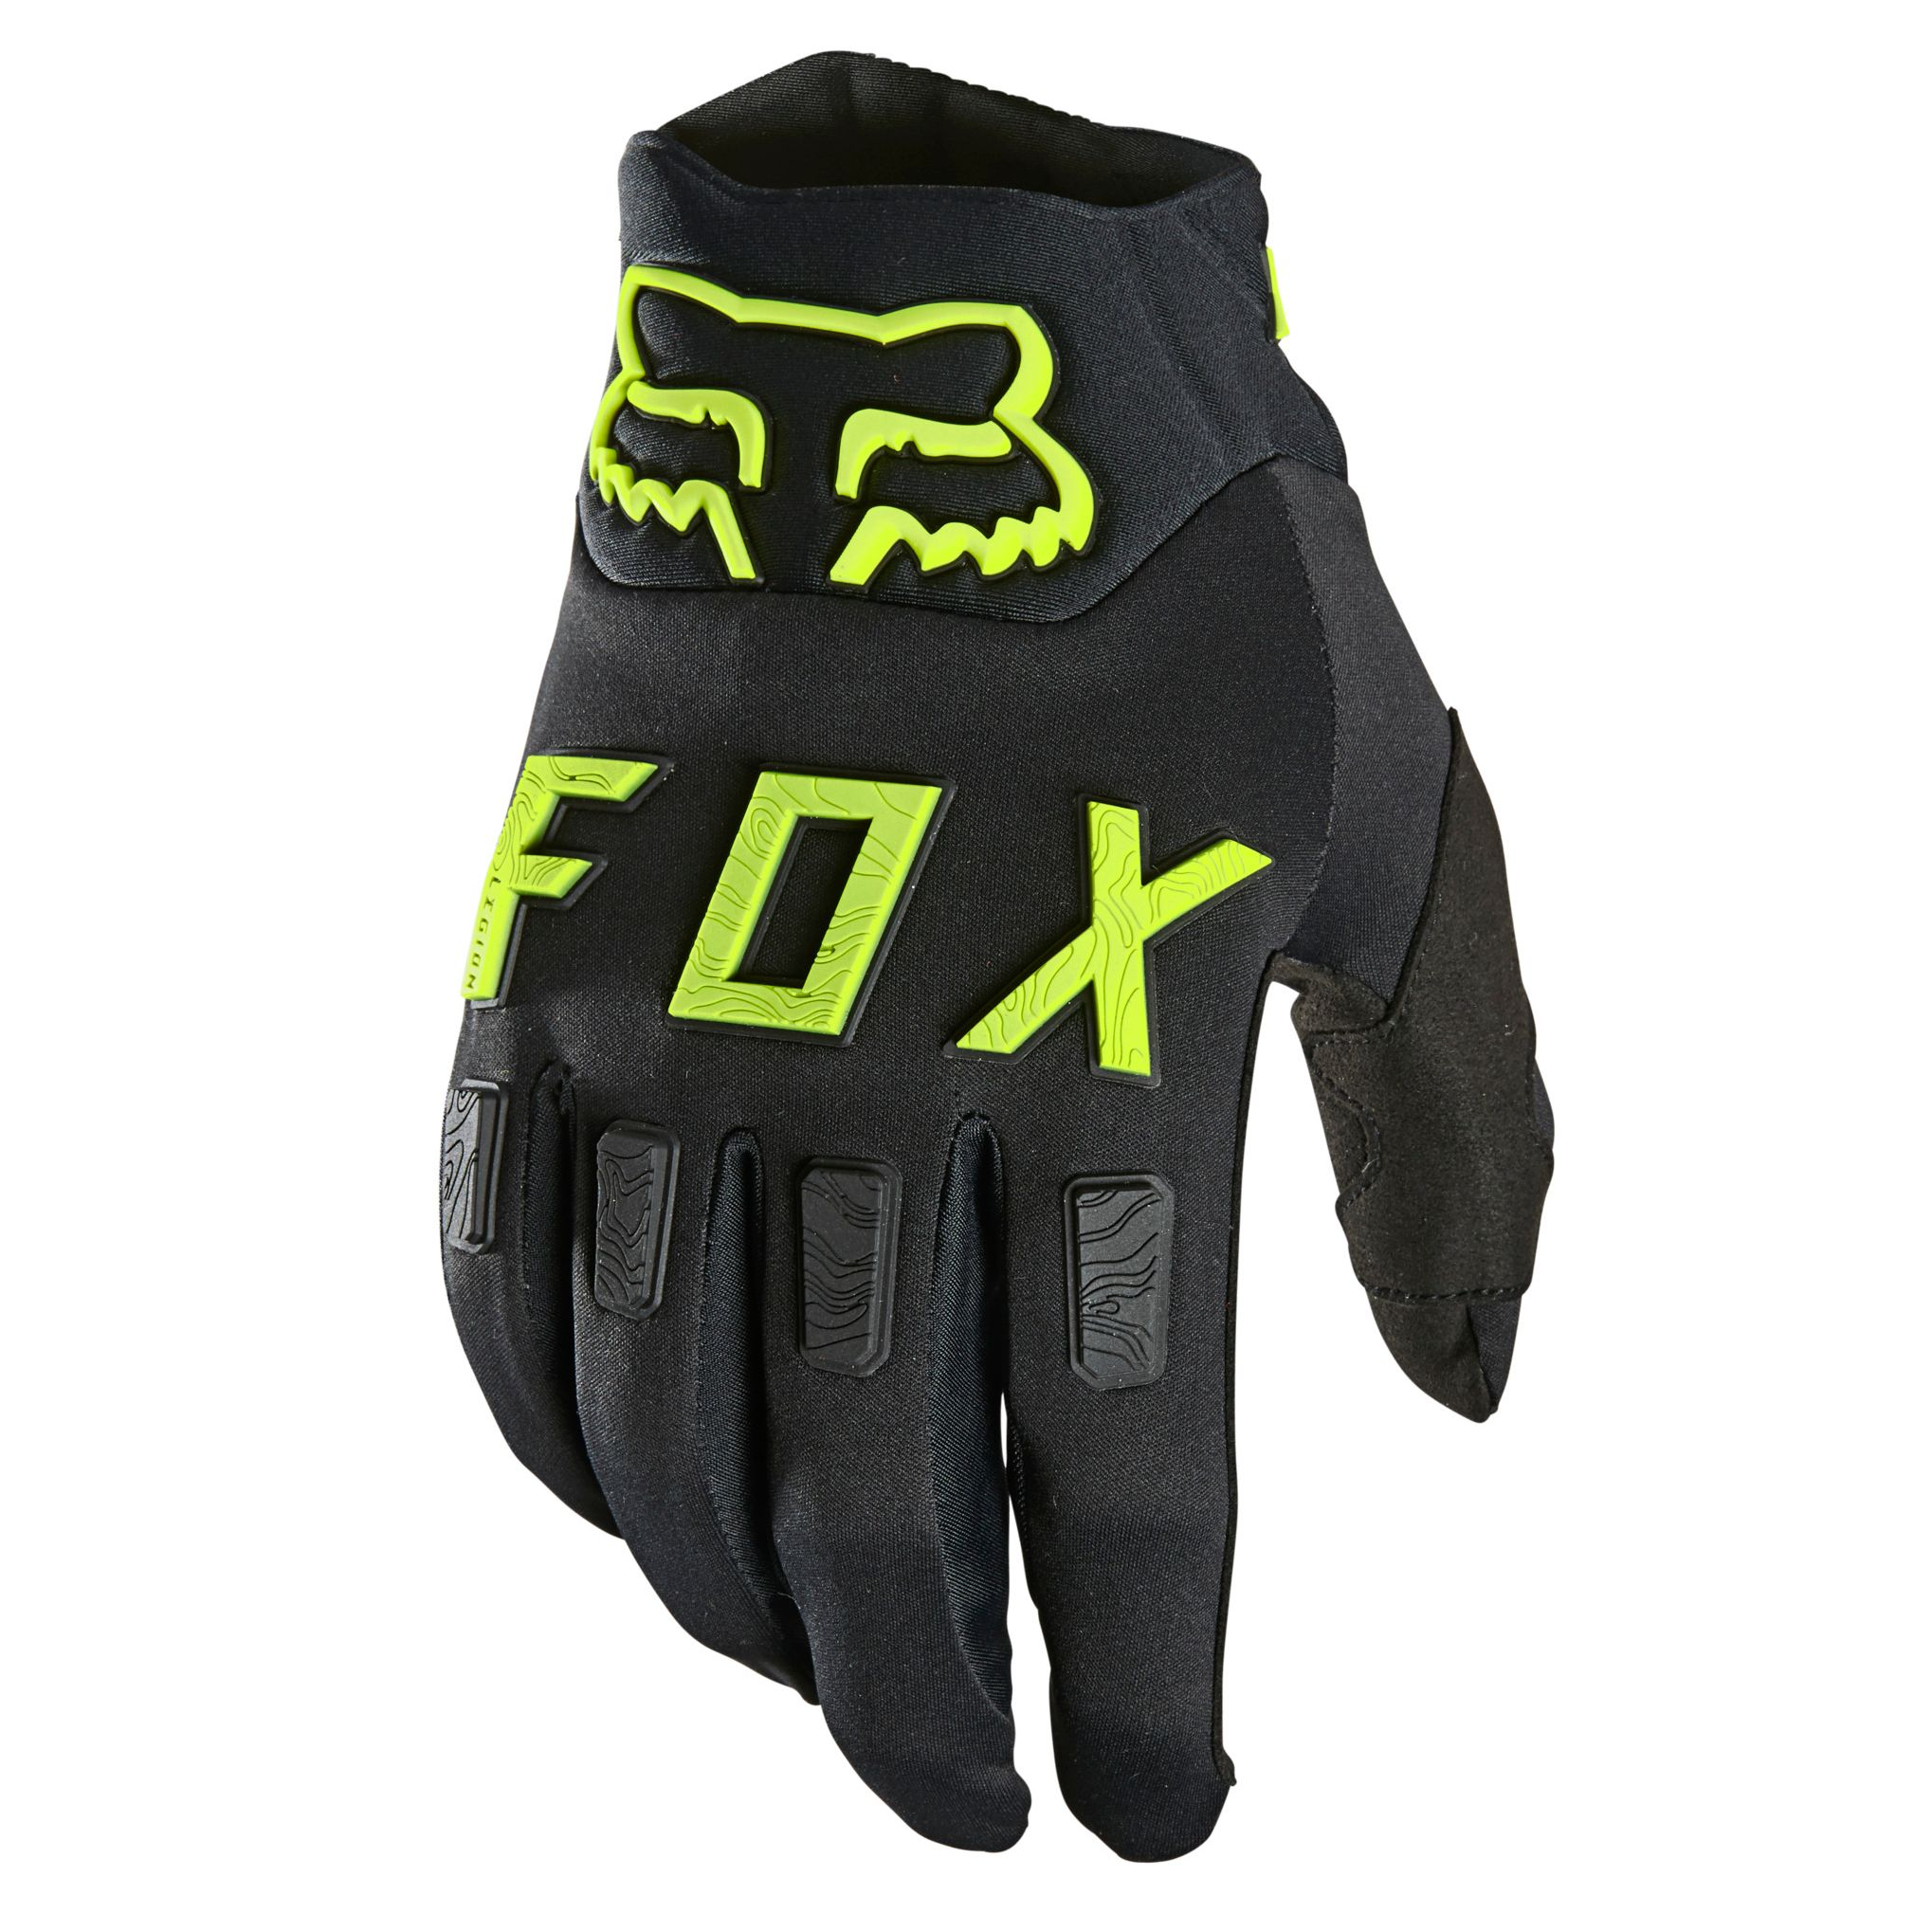 Gants cross Fox Legion water noir/jaune fluo  2021